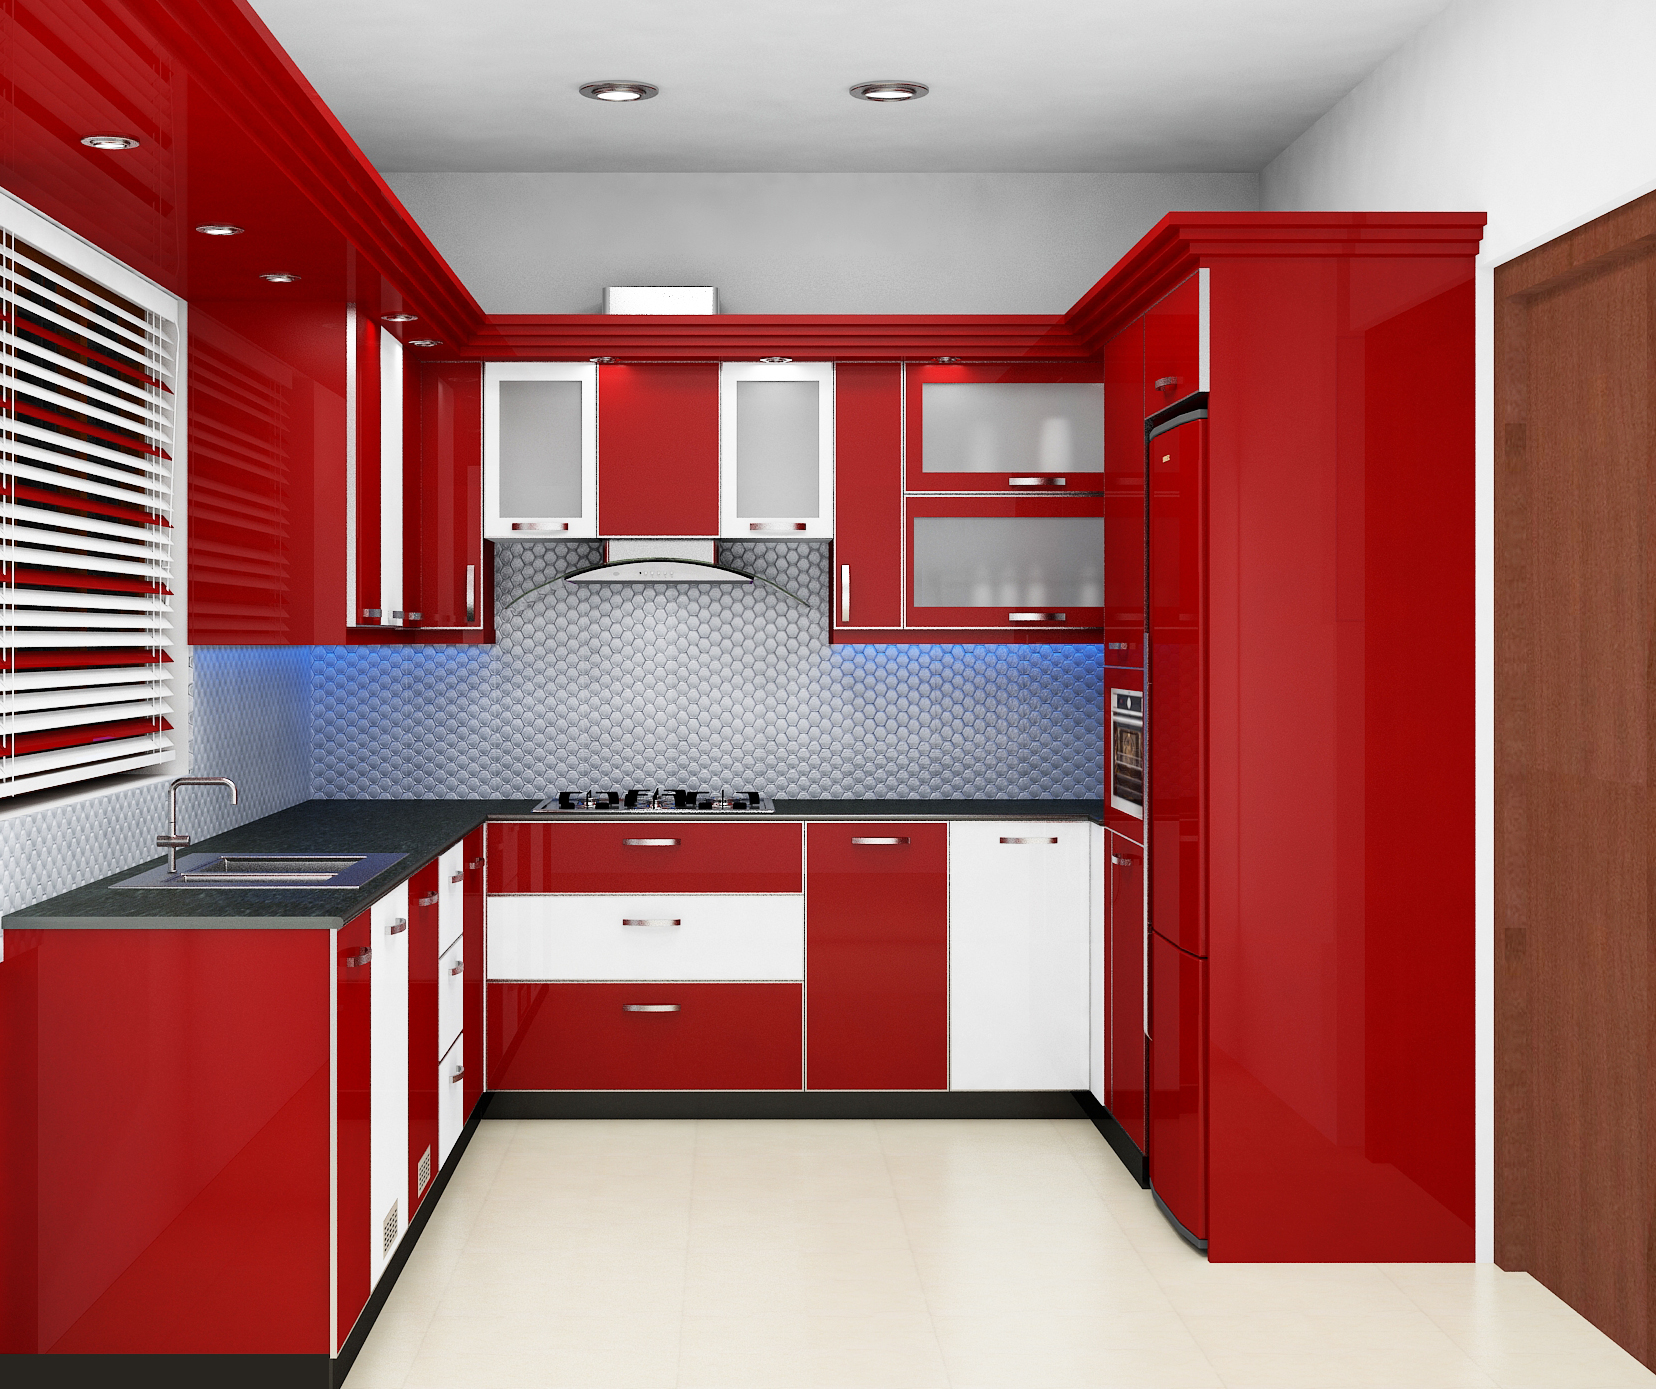 Exemplary and amazing modular kitchen home interior design - Home designs interior ...